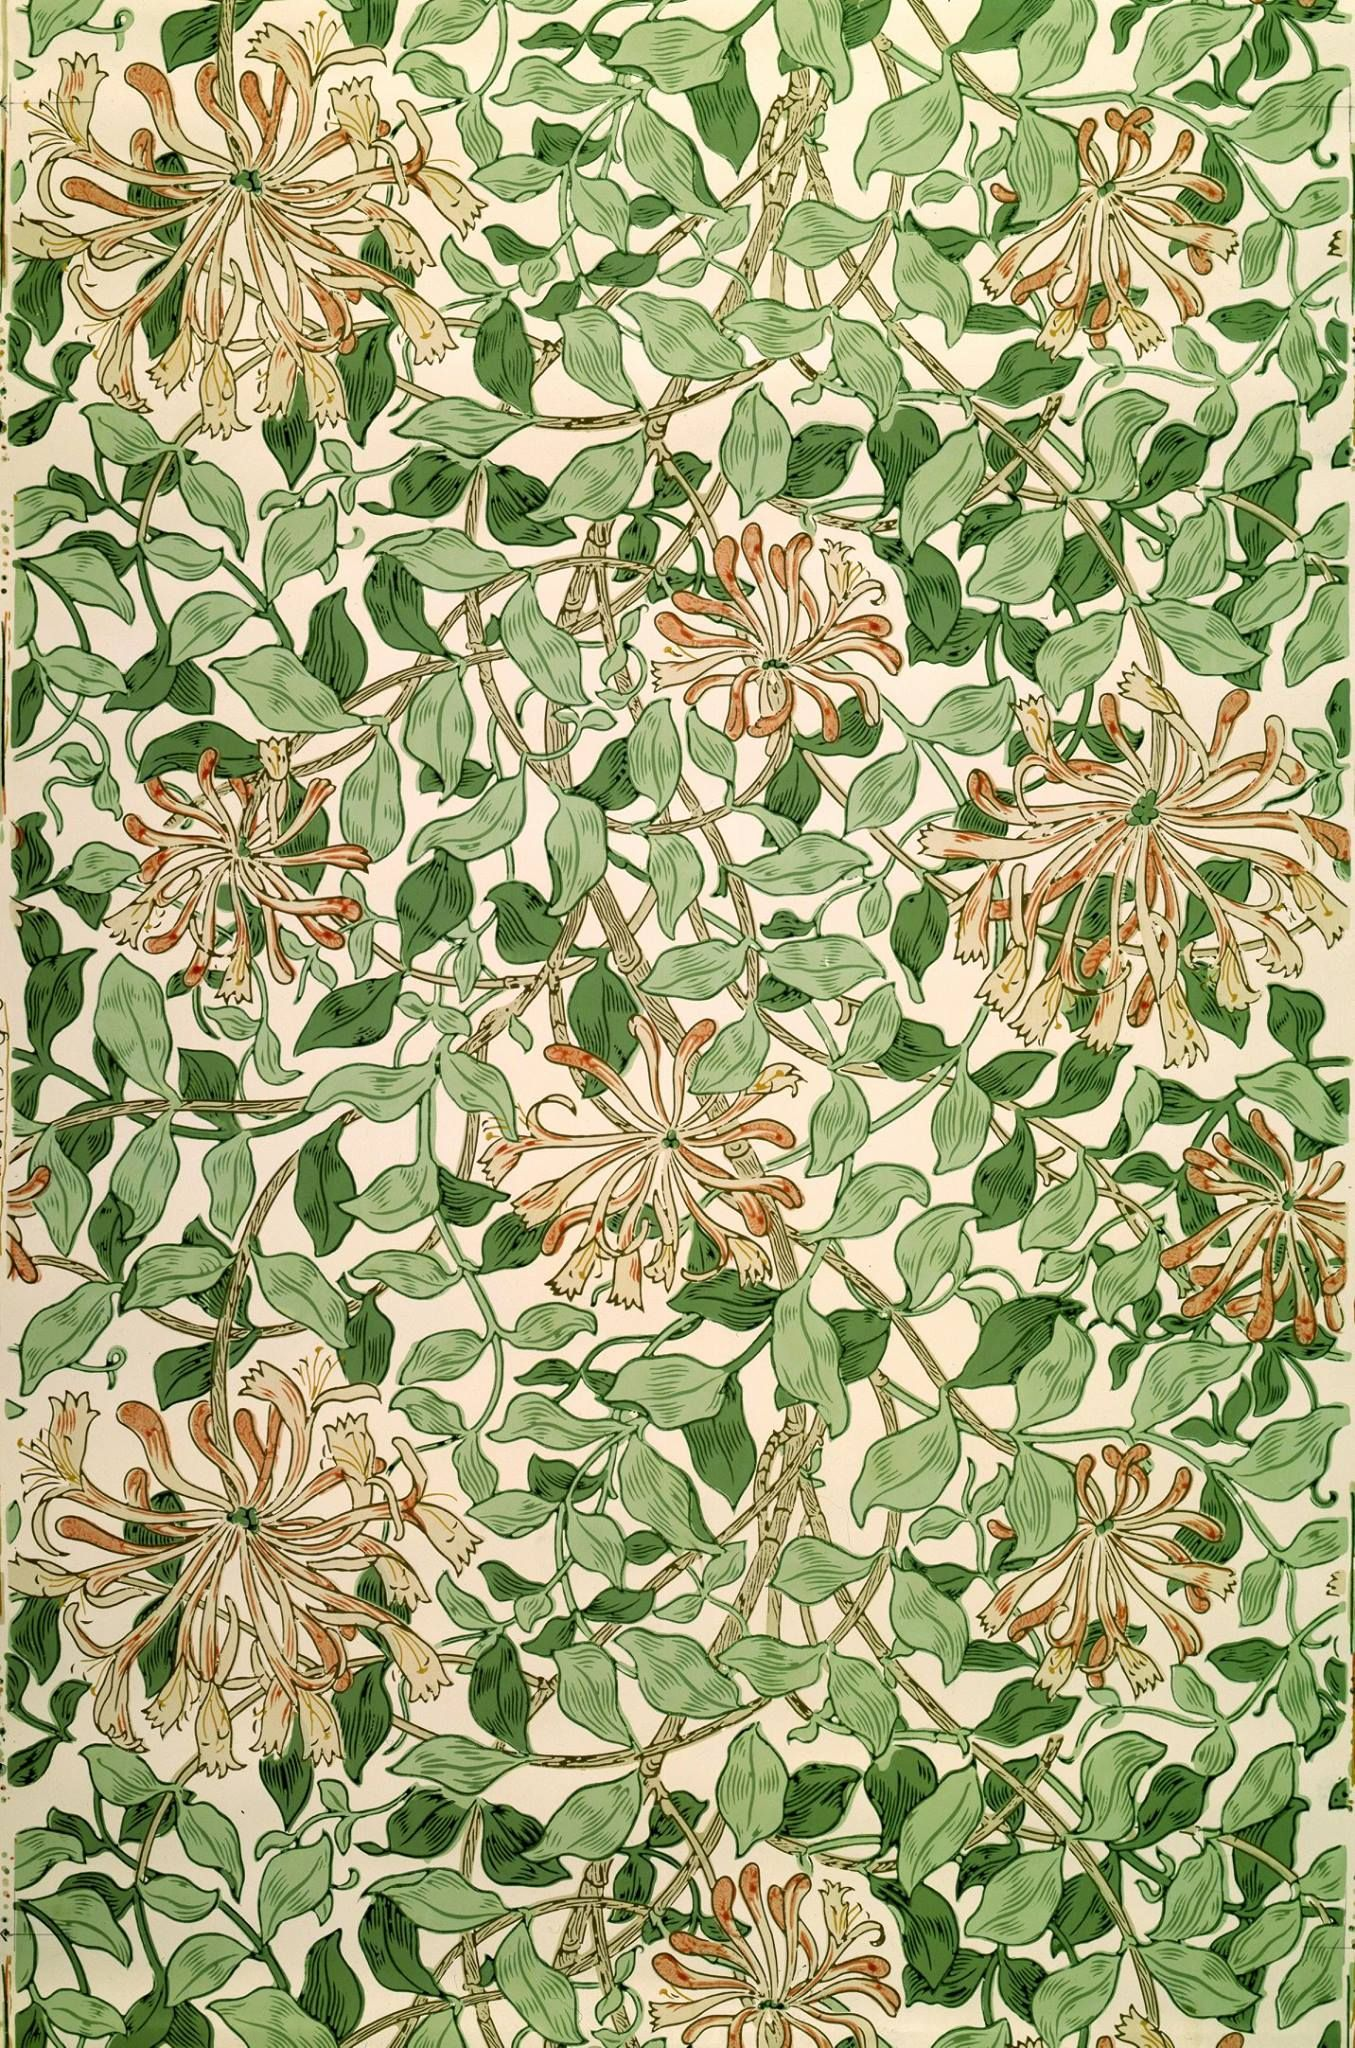 William Morris Honeysuckle design probably killed